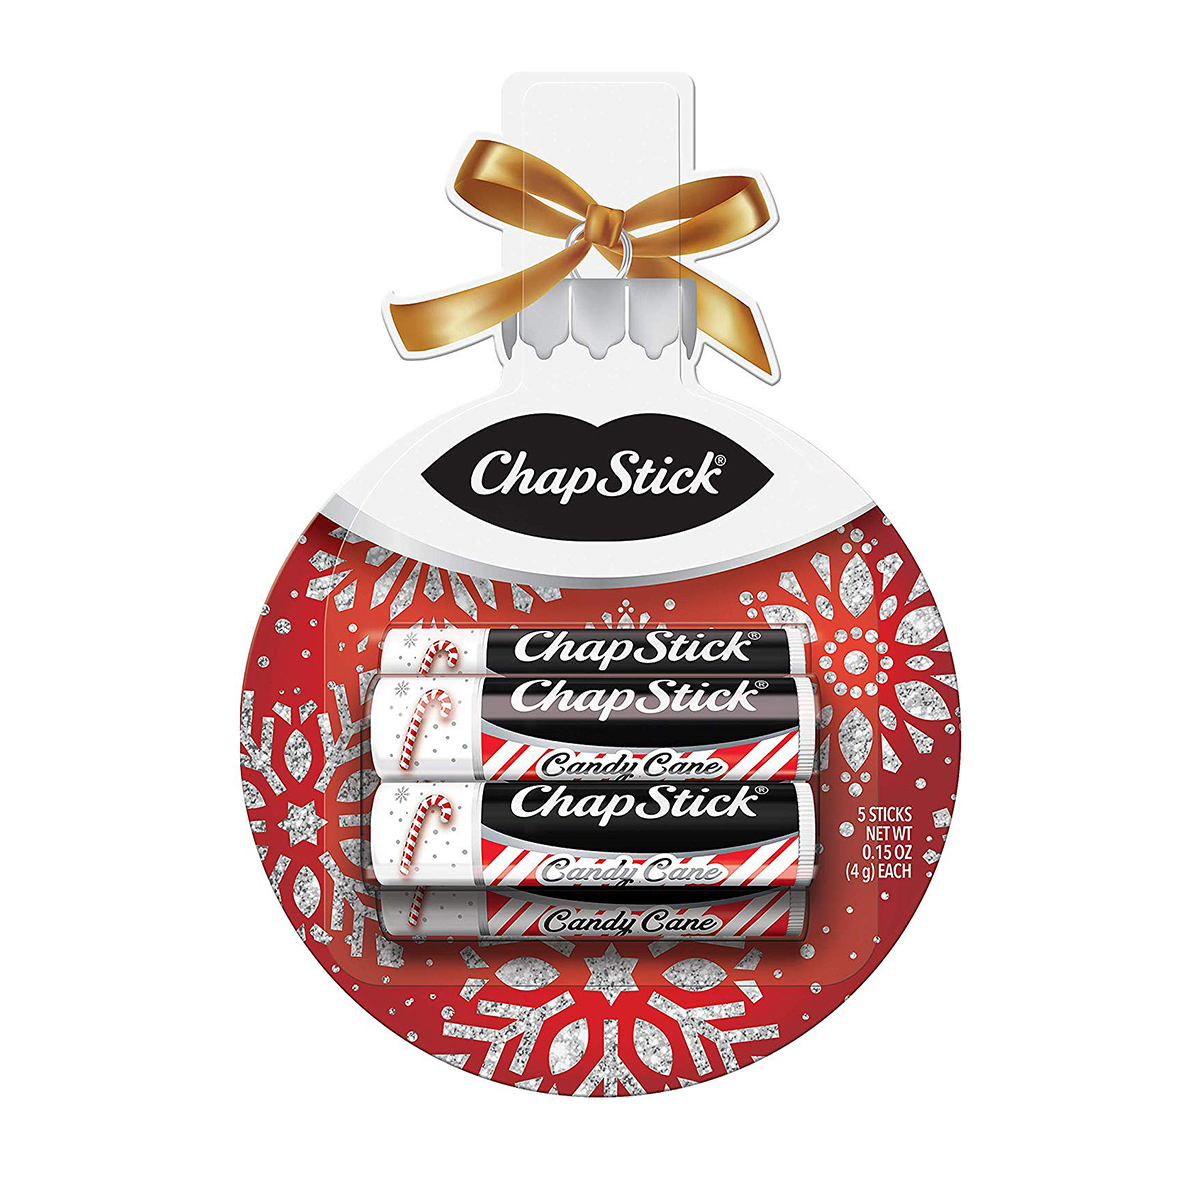 ChapStick Lip Balm Holiday Ornament Gift Pack